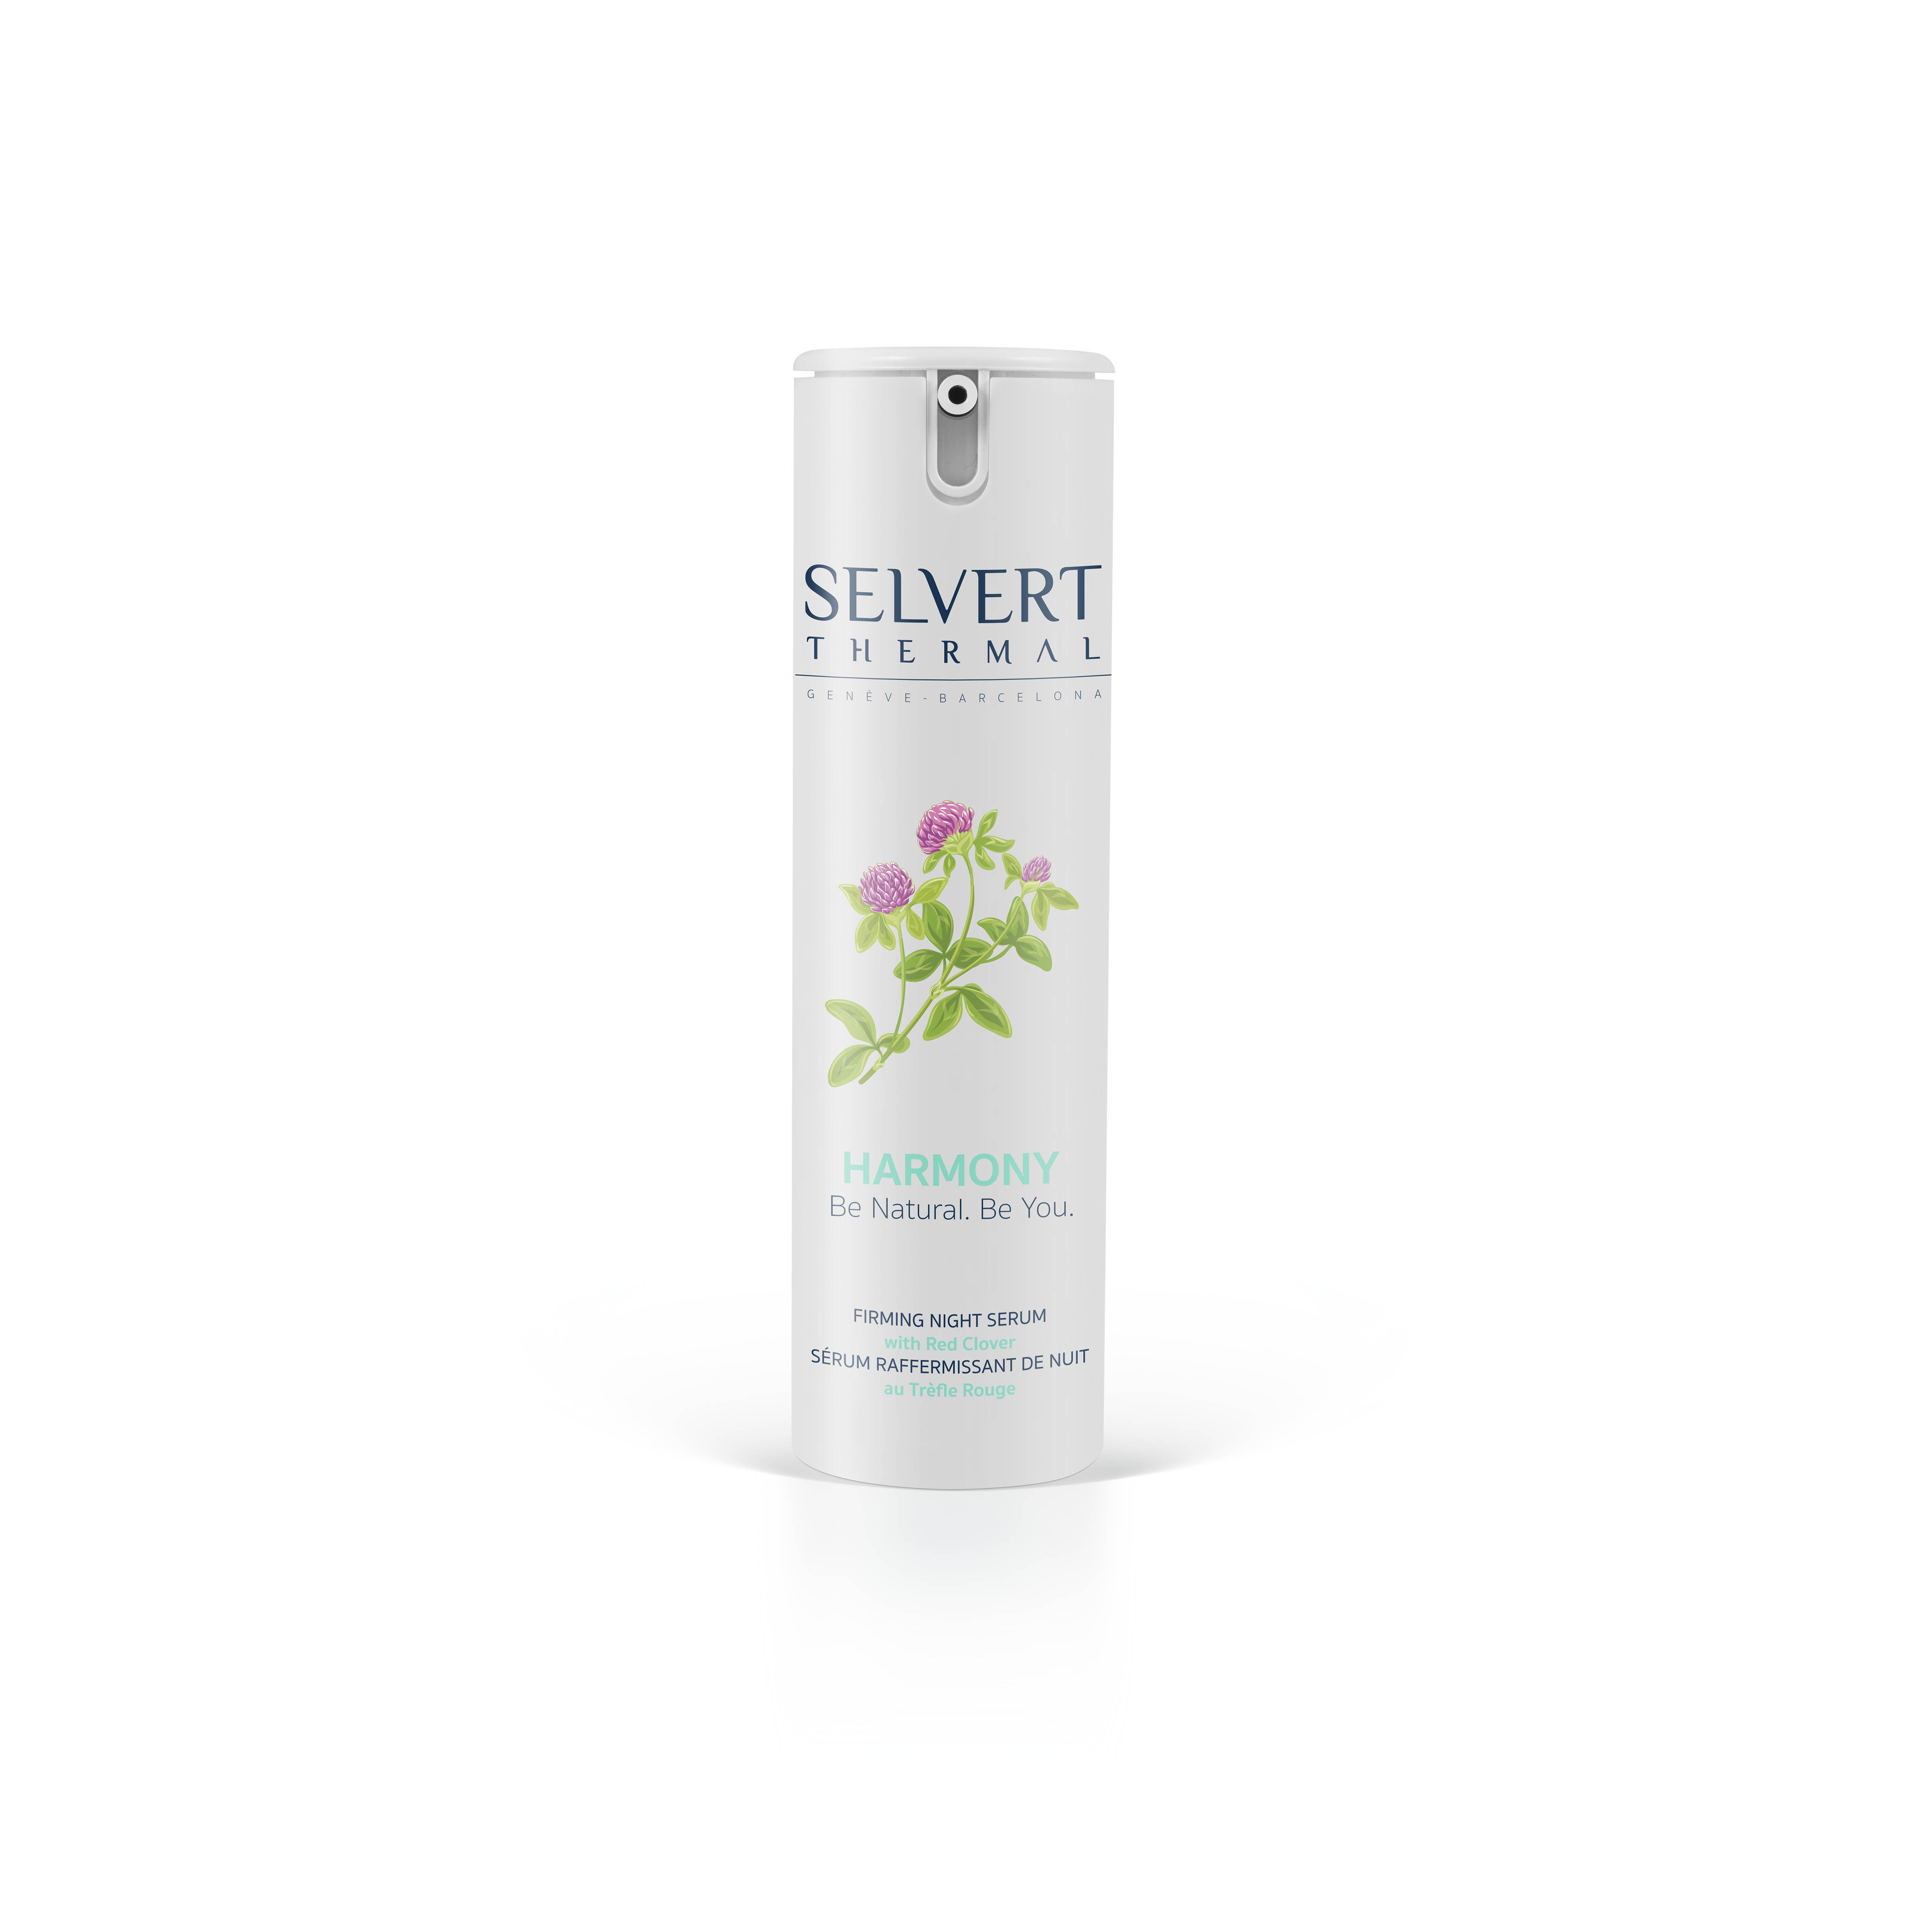 Firming Night Serum with Red Clover Firming Night Serum with Red Clover